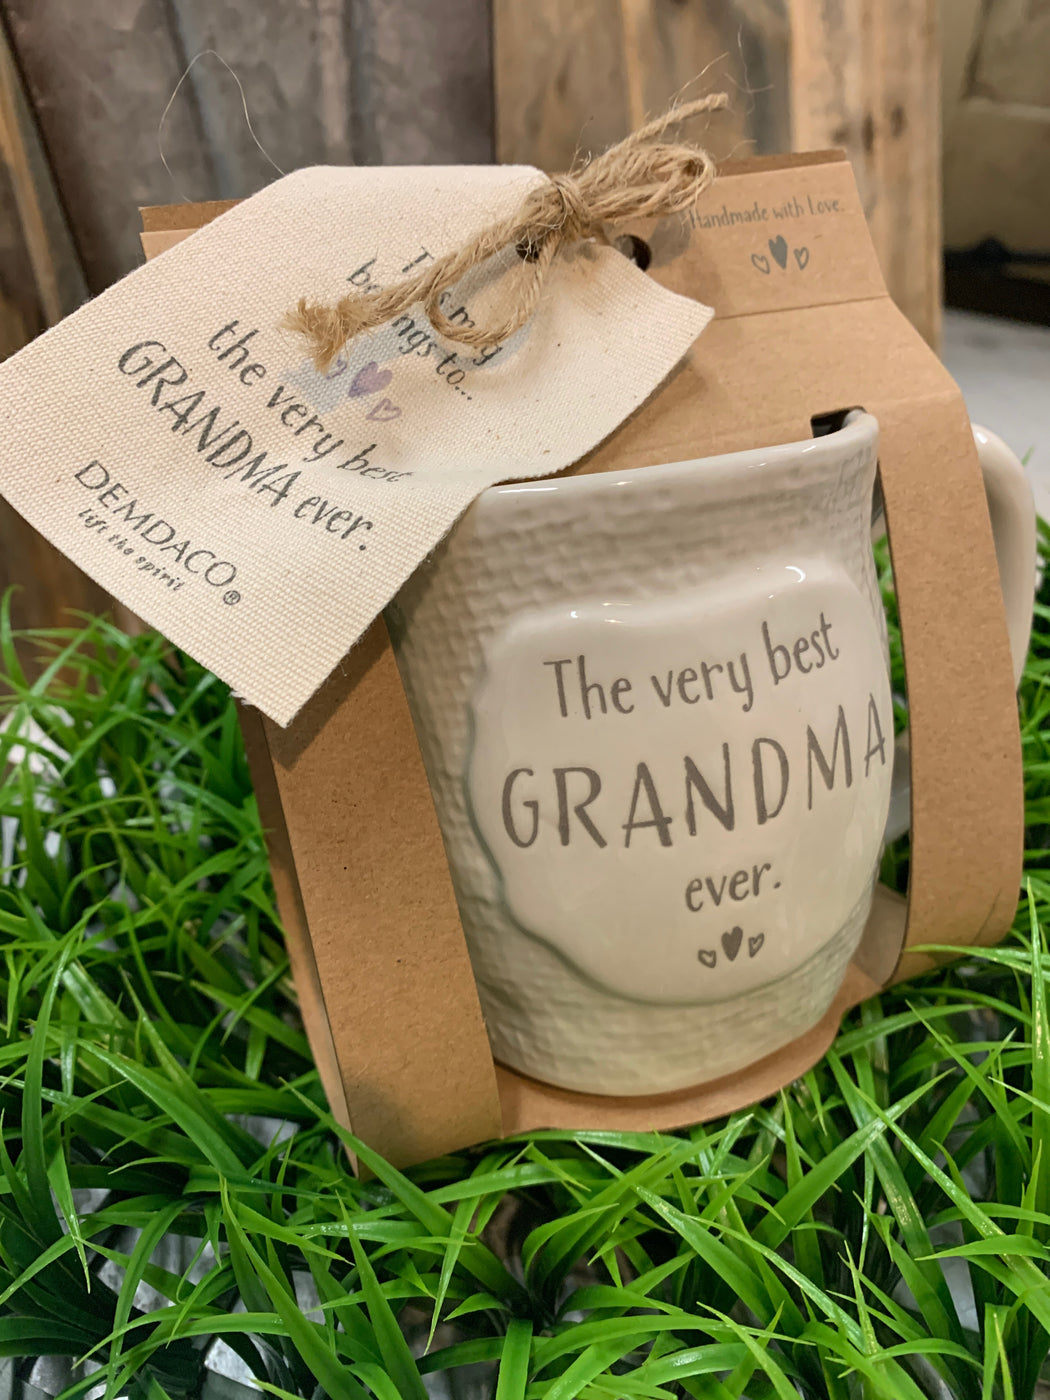 "This unique ceramic mug features a classic textured cream appearance that is perfect for any new or existing grandma. Bold debossed text across the front proudly announces to the world that they are, in fact, ""The Very Best Grandma Ever!"""